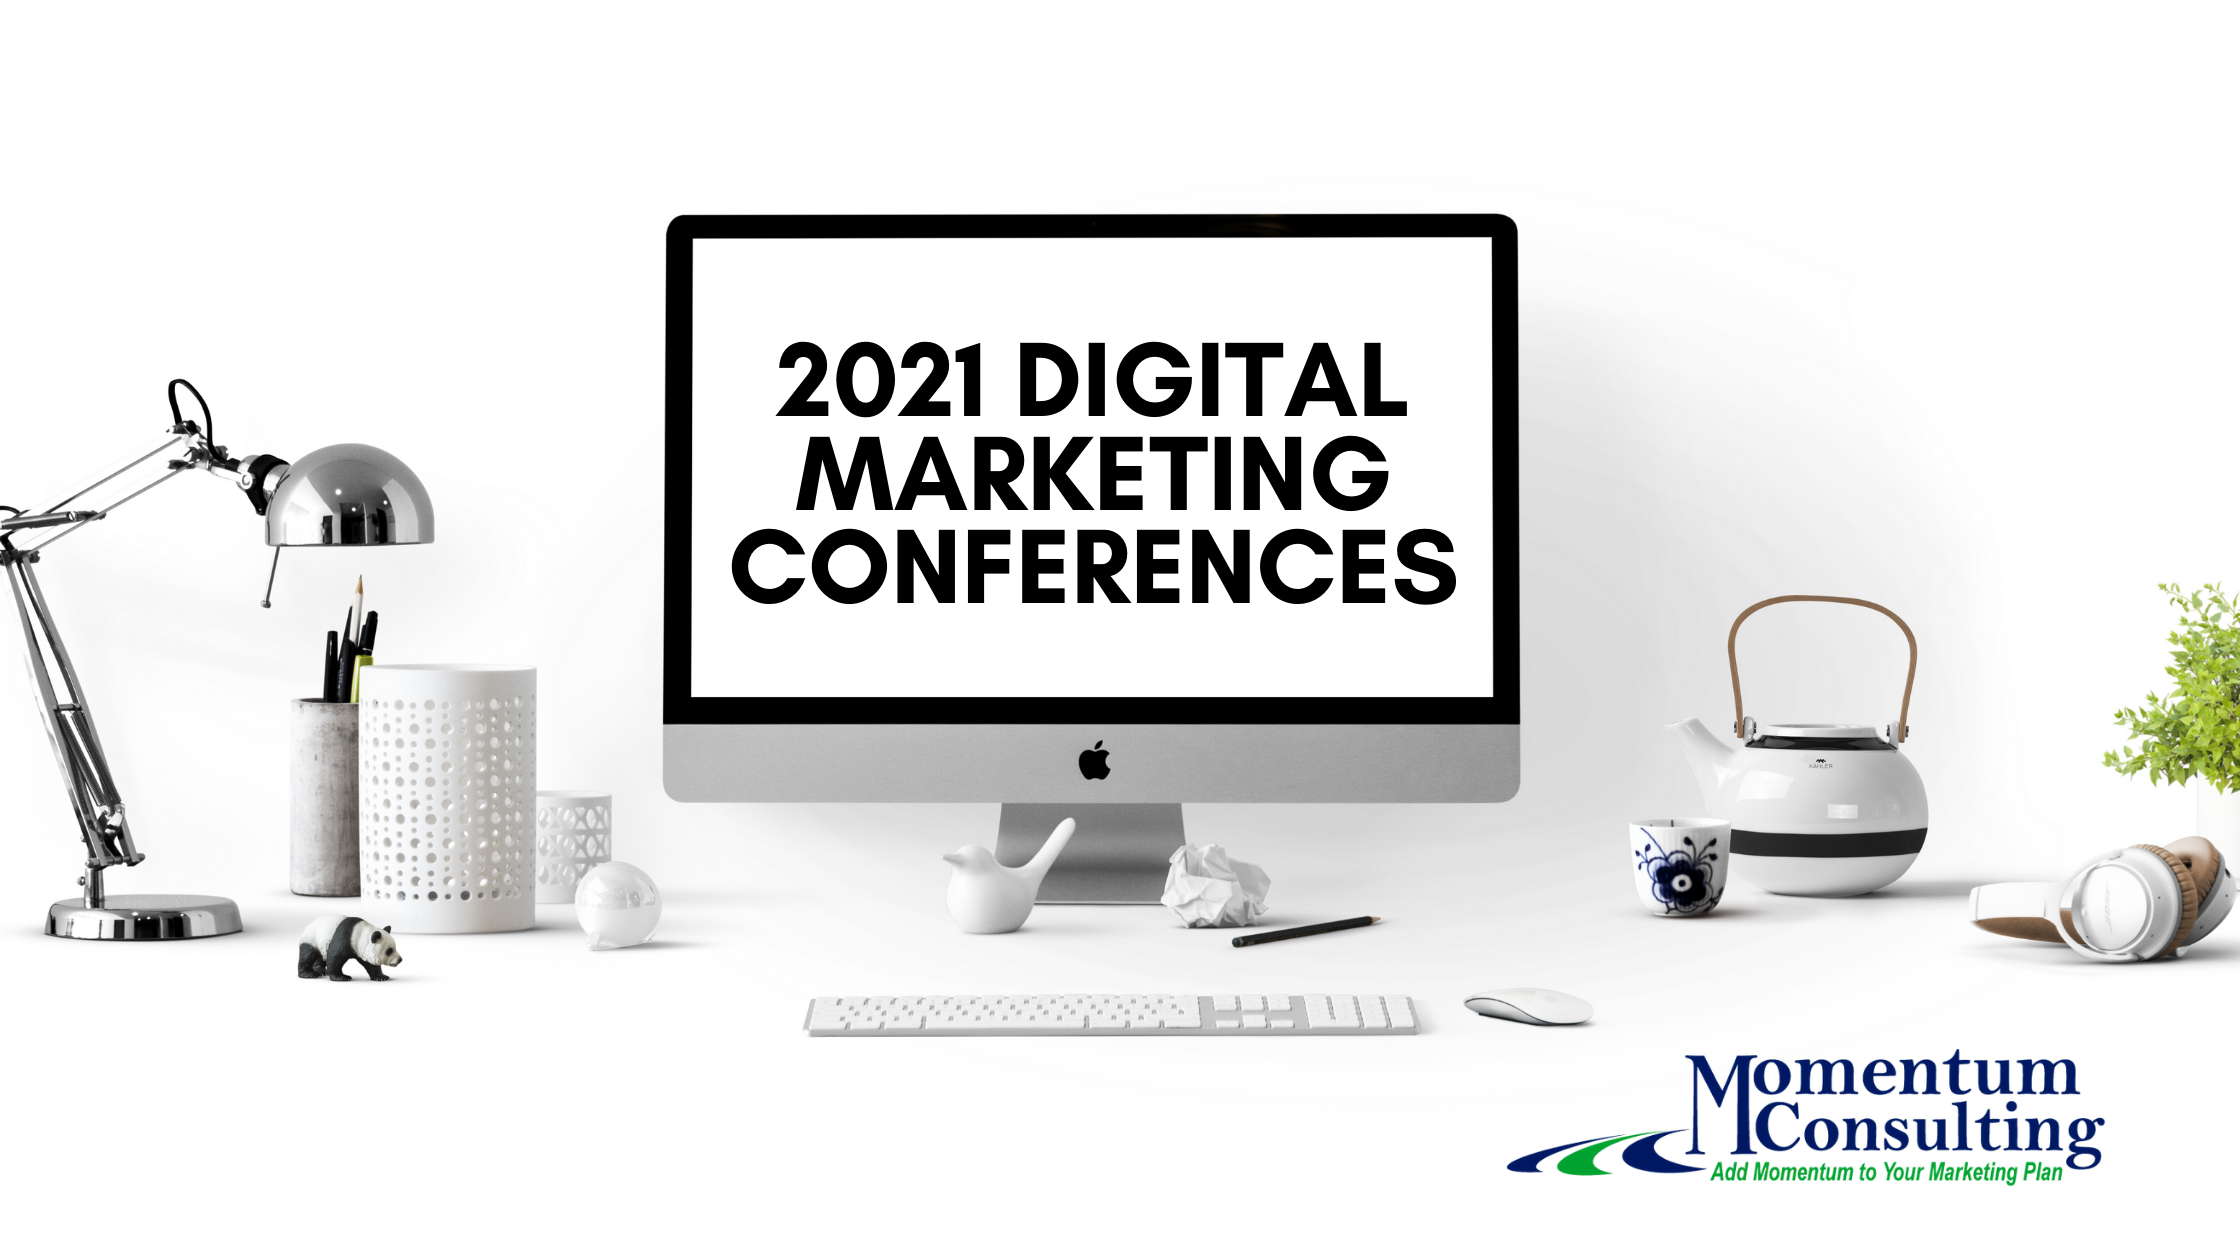 Momentum Consulting 2021 Digital Marketing Conferences